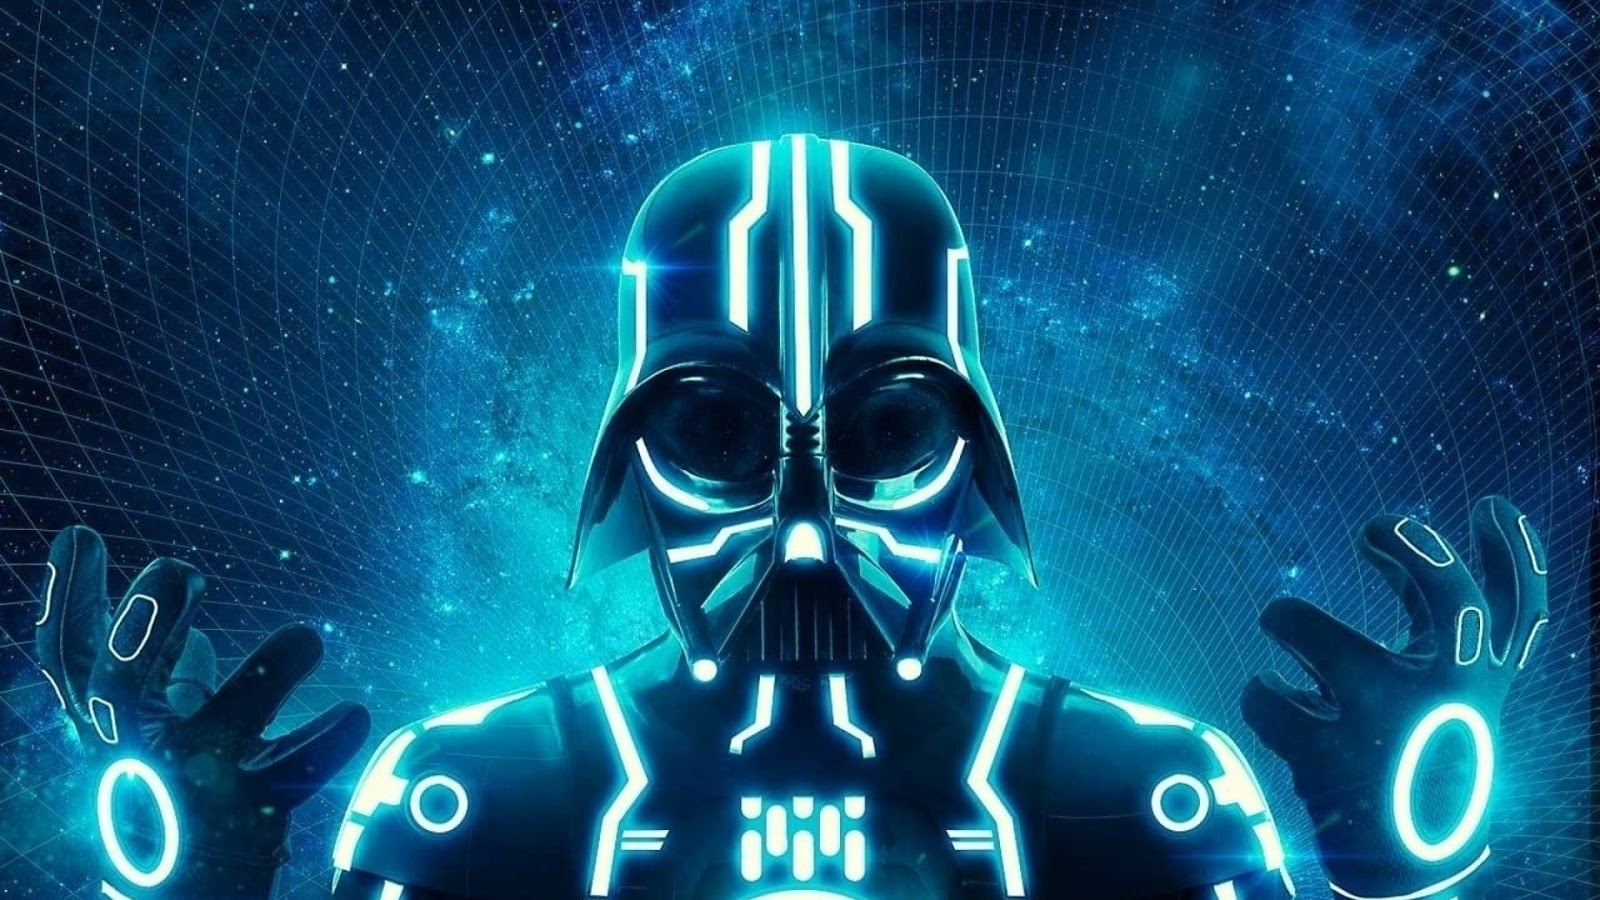 Neon Wallpapers for Android - Neon Tron Vader